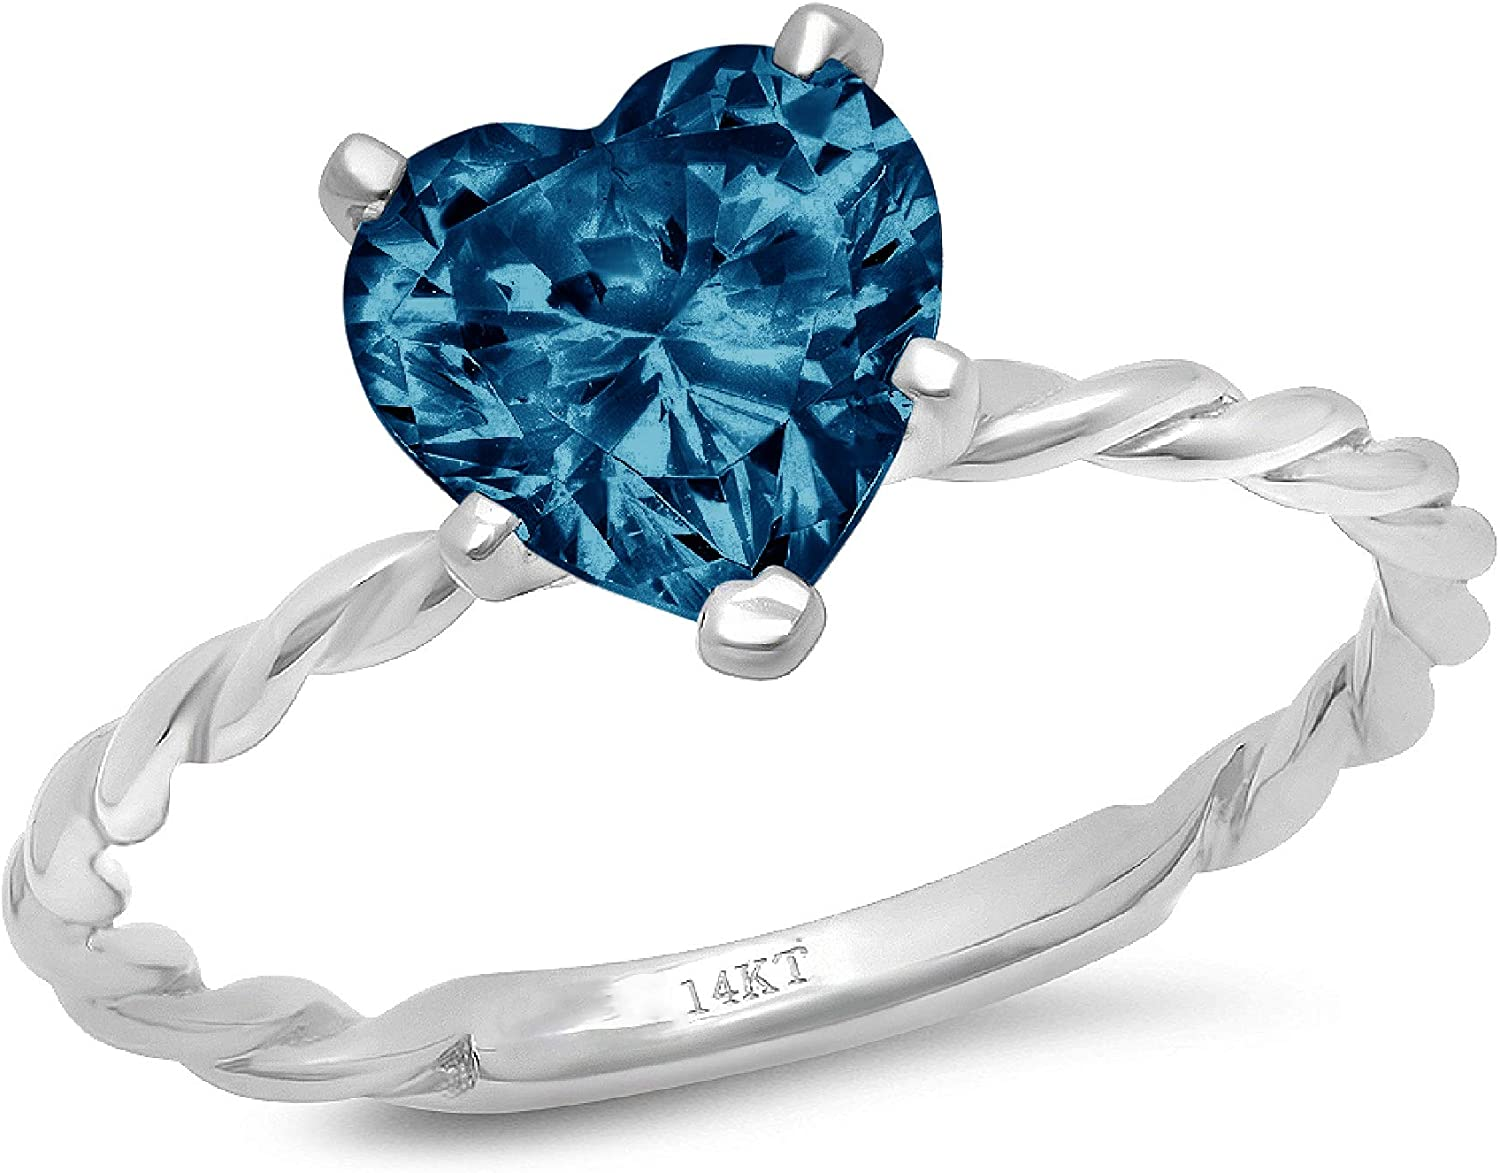 2.0 ct Brilliant Heart Cut Solitaire Rope Twisted Knot Natural London Blue Gem Stone Ideal VVS1 5-Prong Engagement Wedding Bridal Promise Anniversary Ring Solid 14k White Gold for Women